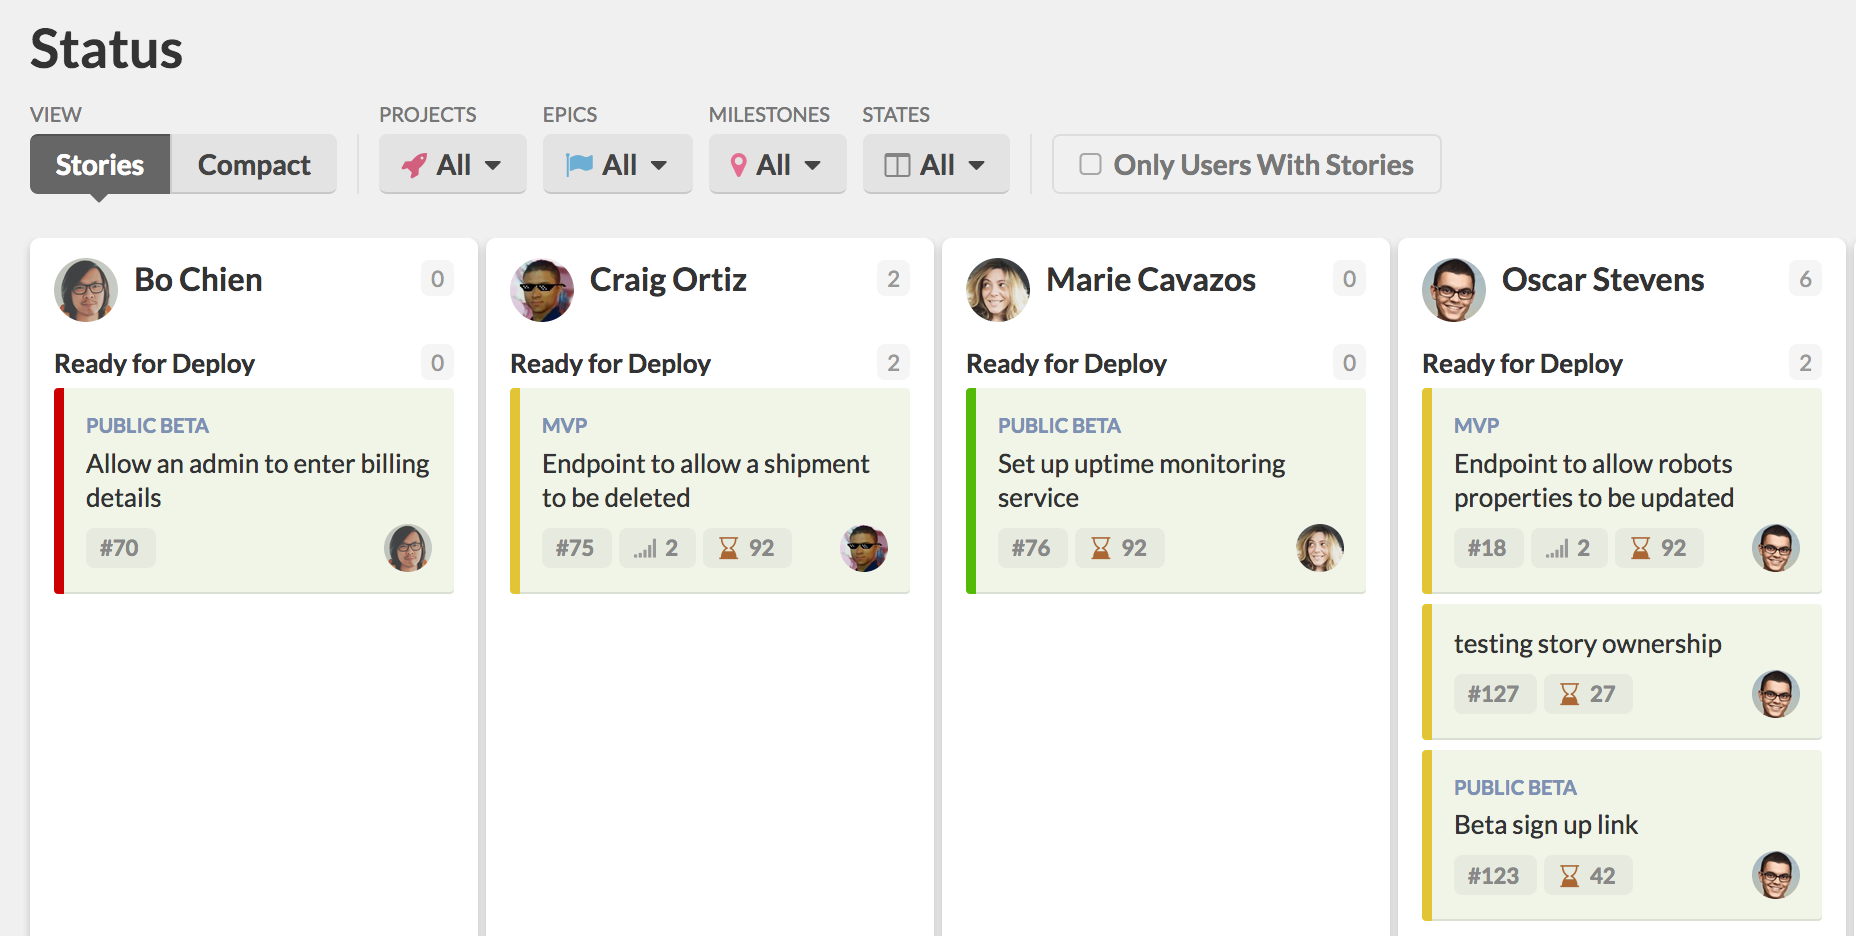 The Status Page in Stories View